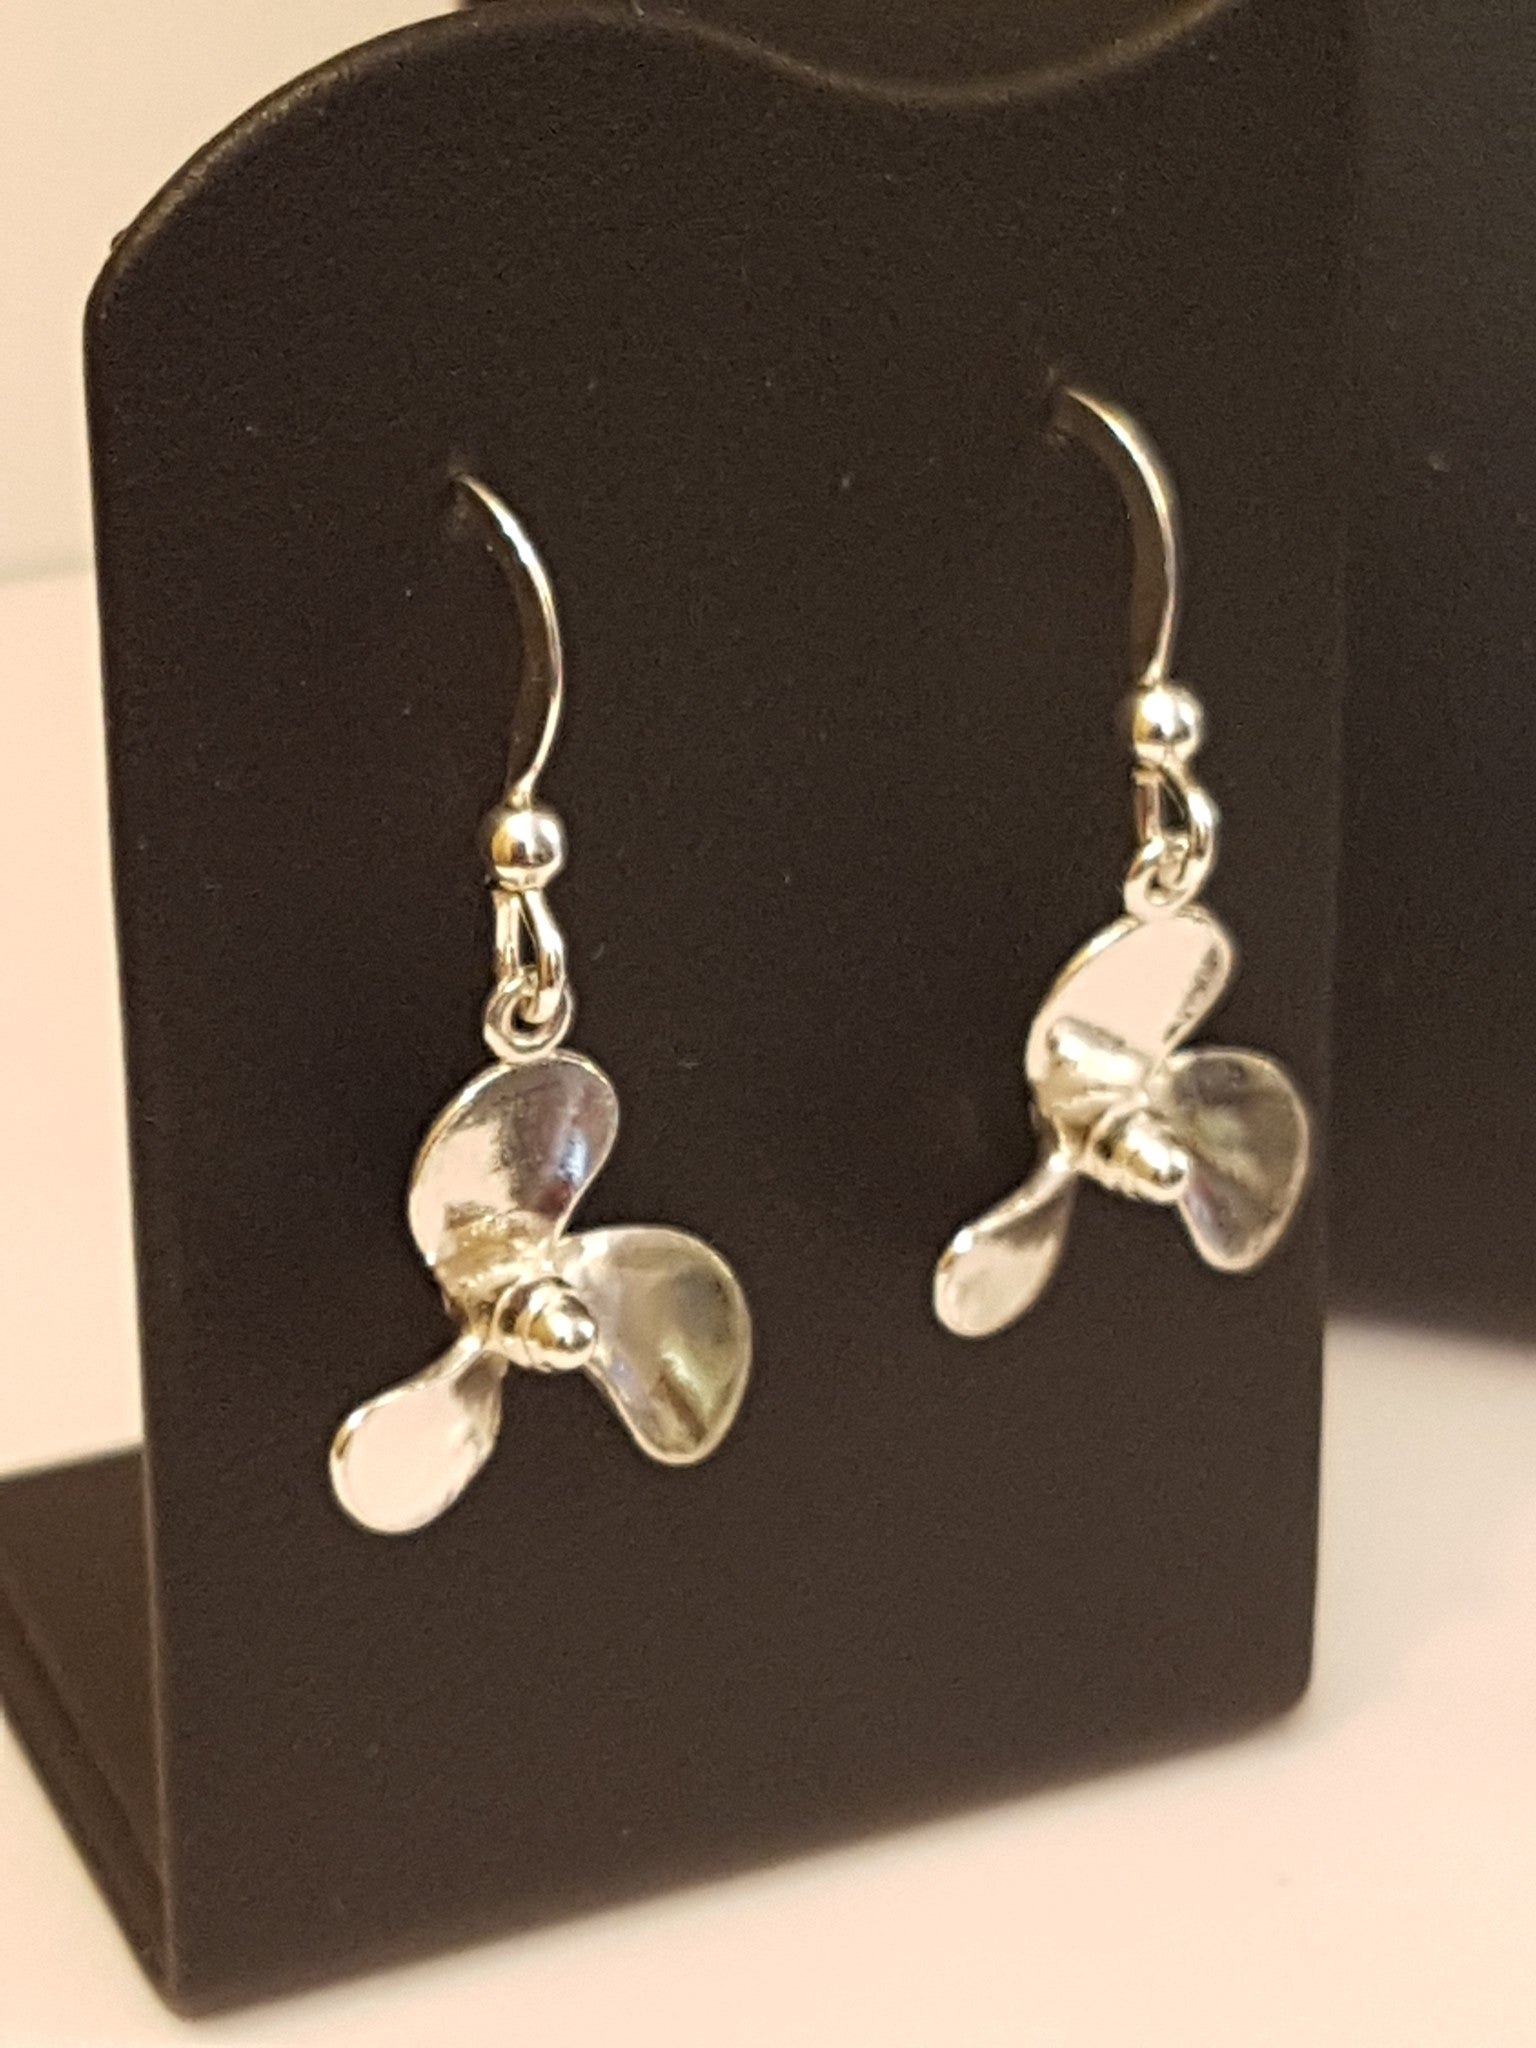 Propeller Earrings - drops